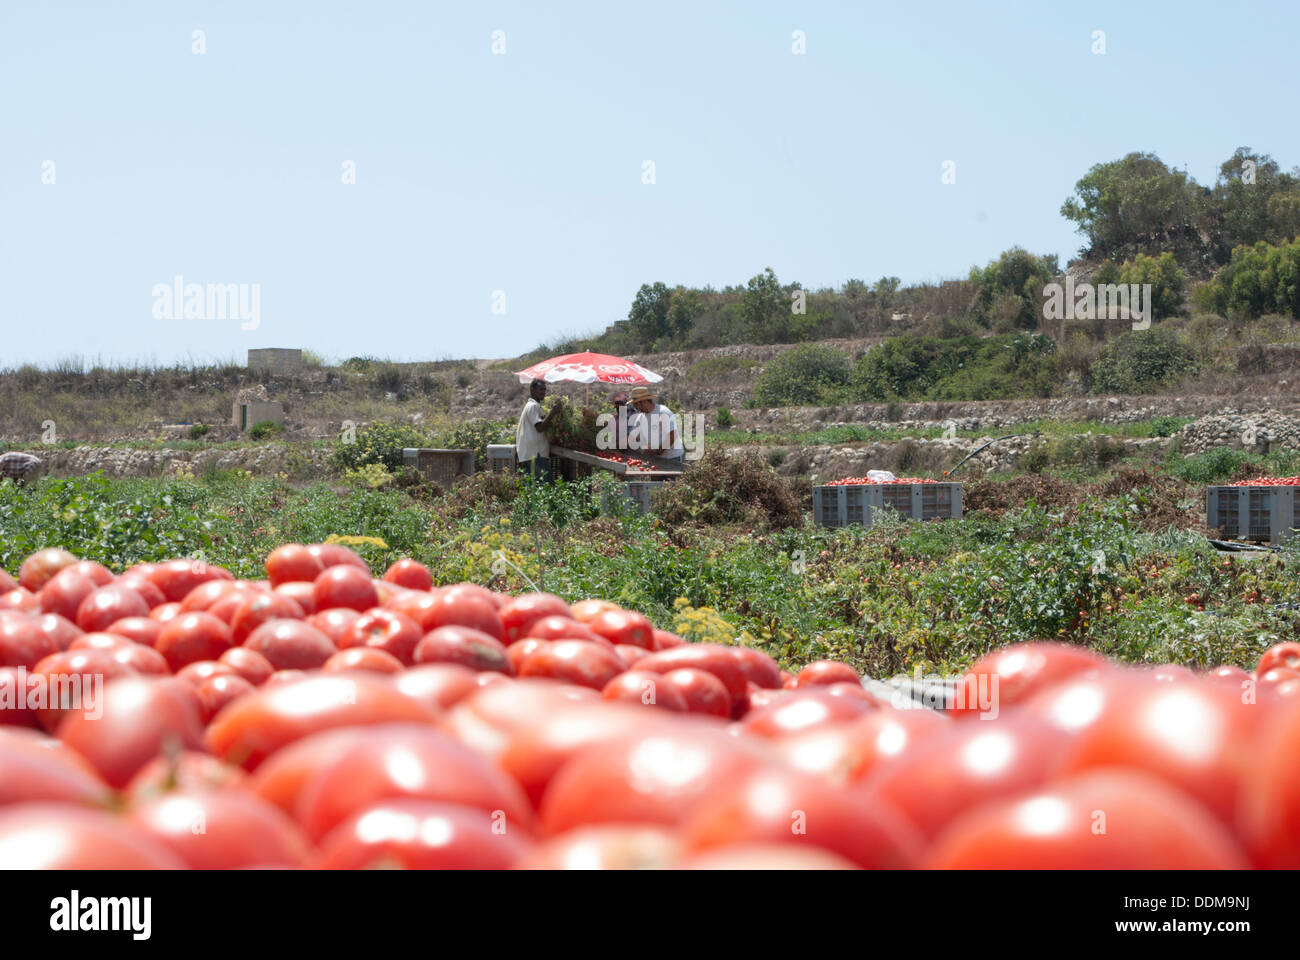 Farm workers grading tomatoes - Stock Image